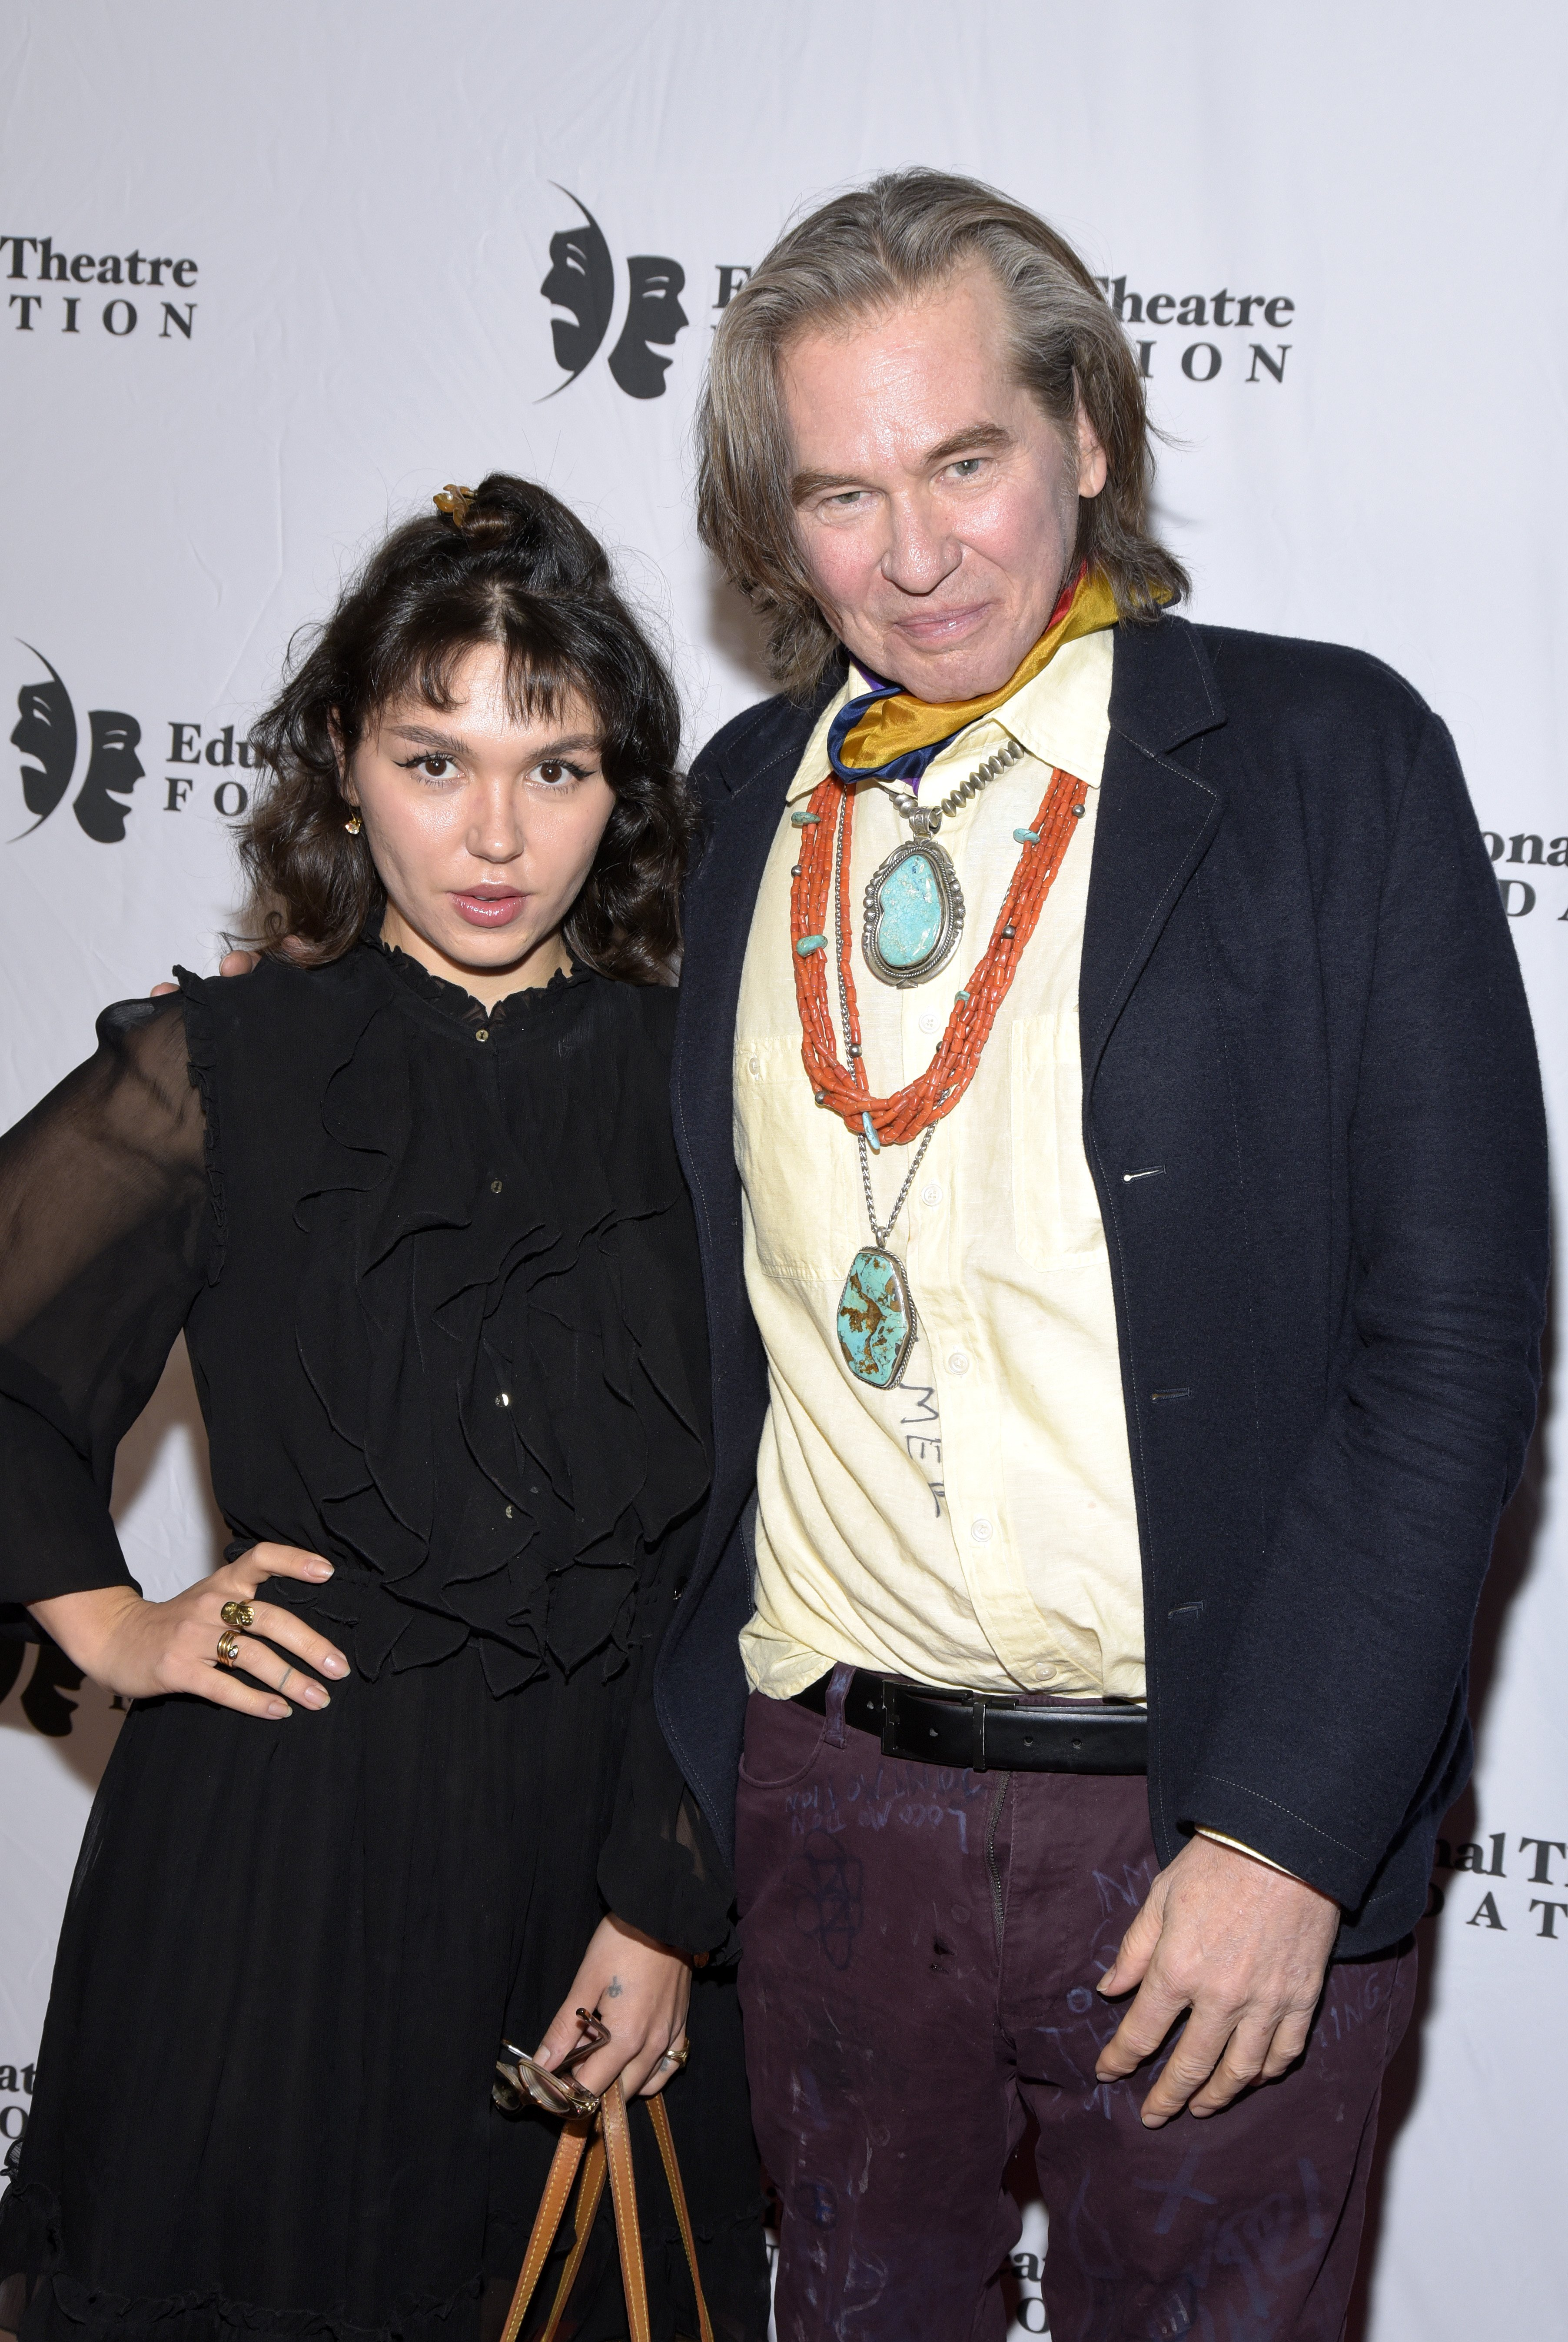 """The """"Paydirt"""" is the first film of Val Kilmer and Mercedes Kilmer this year. 